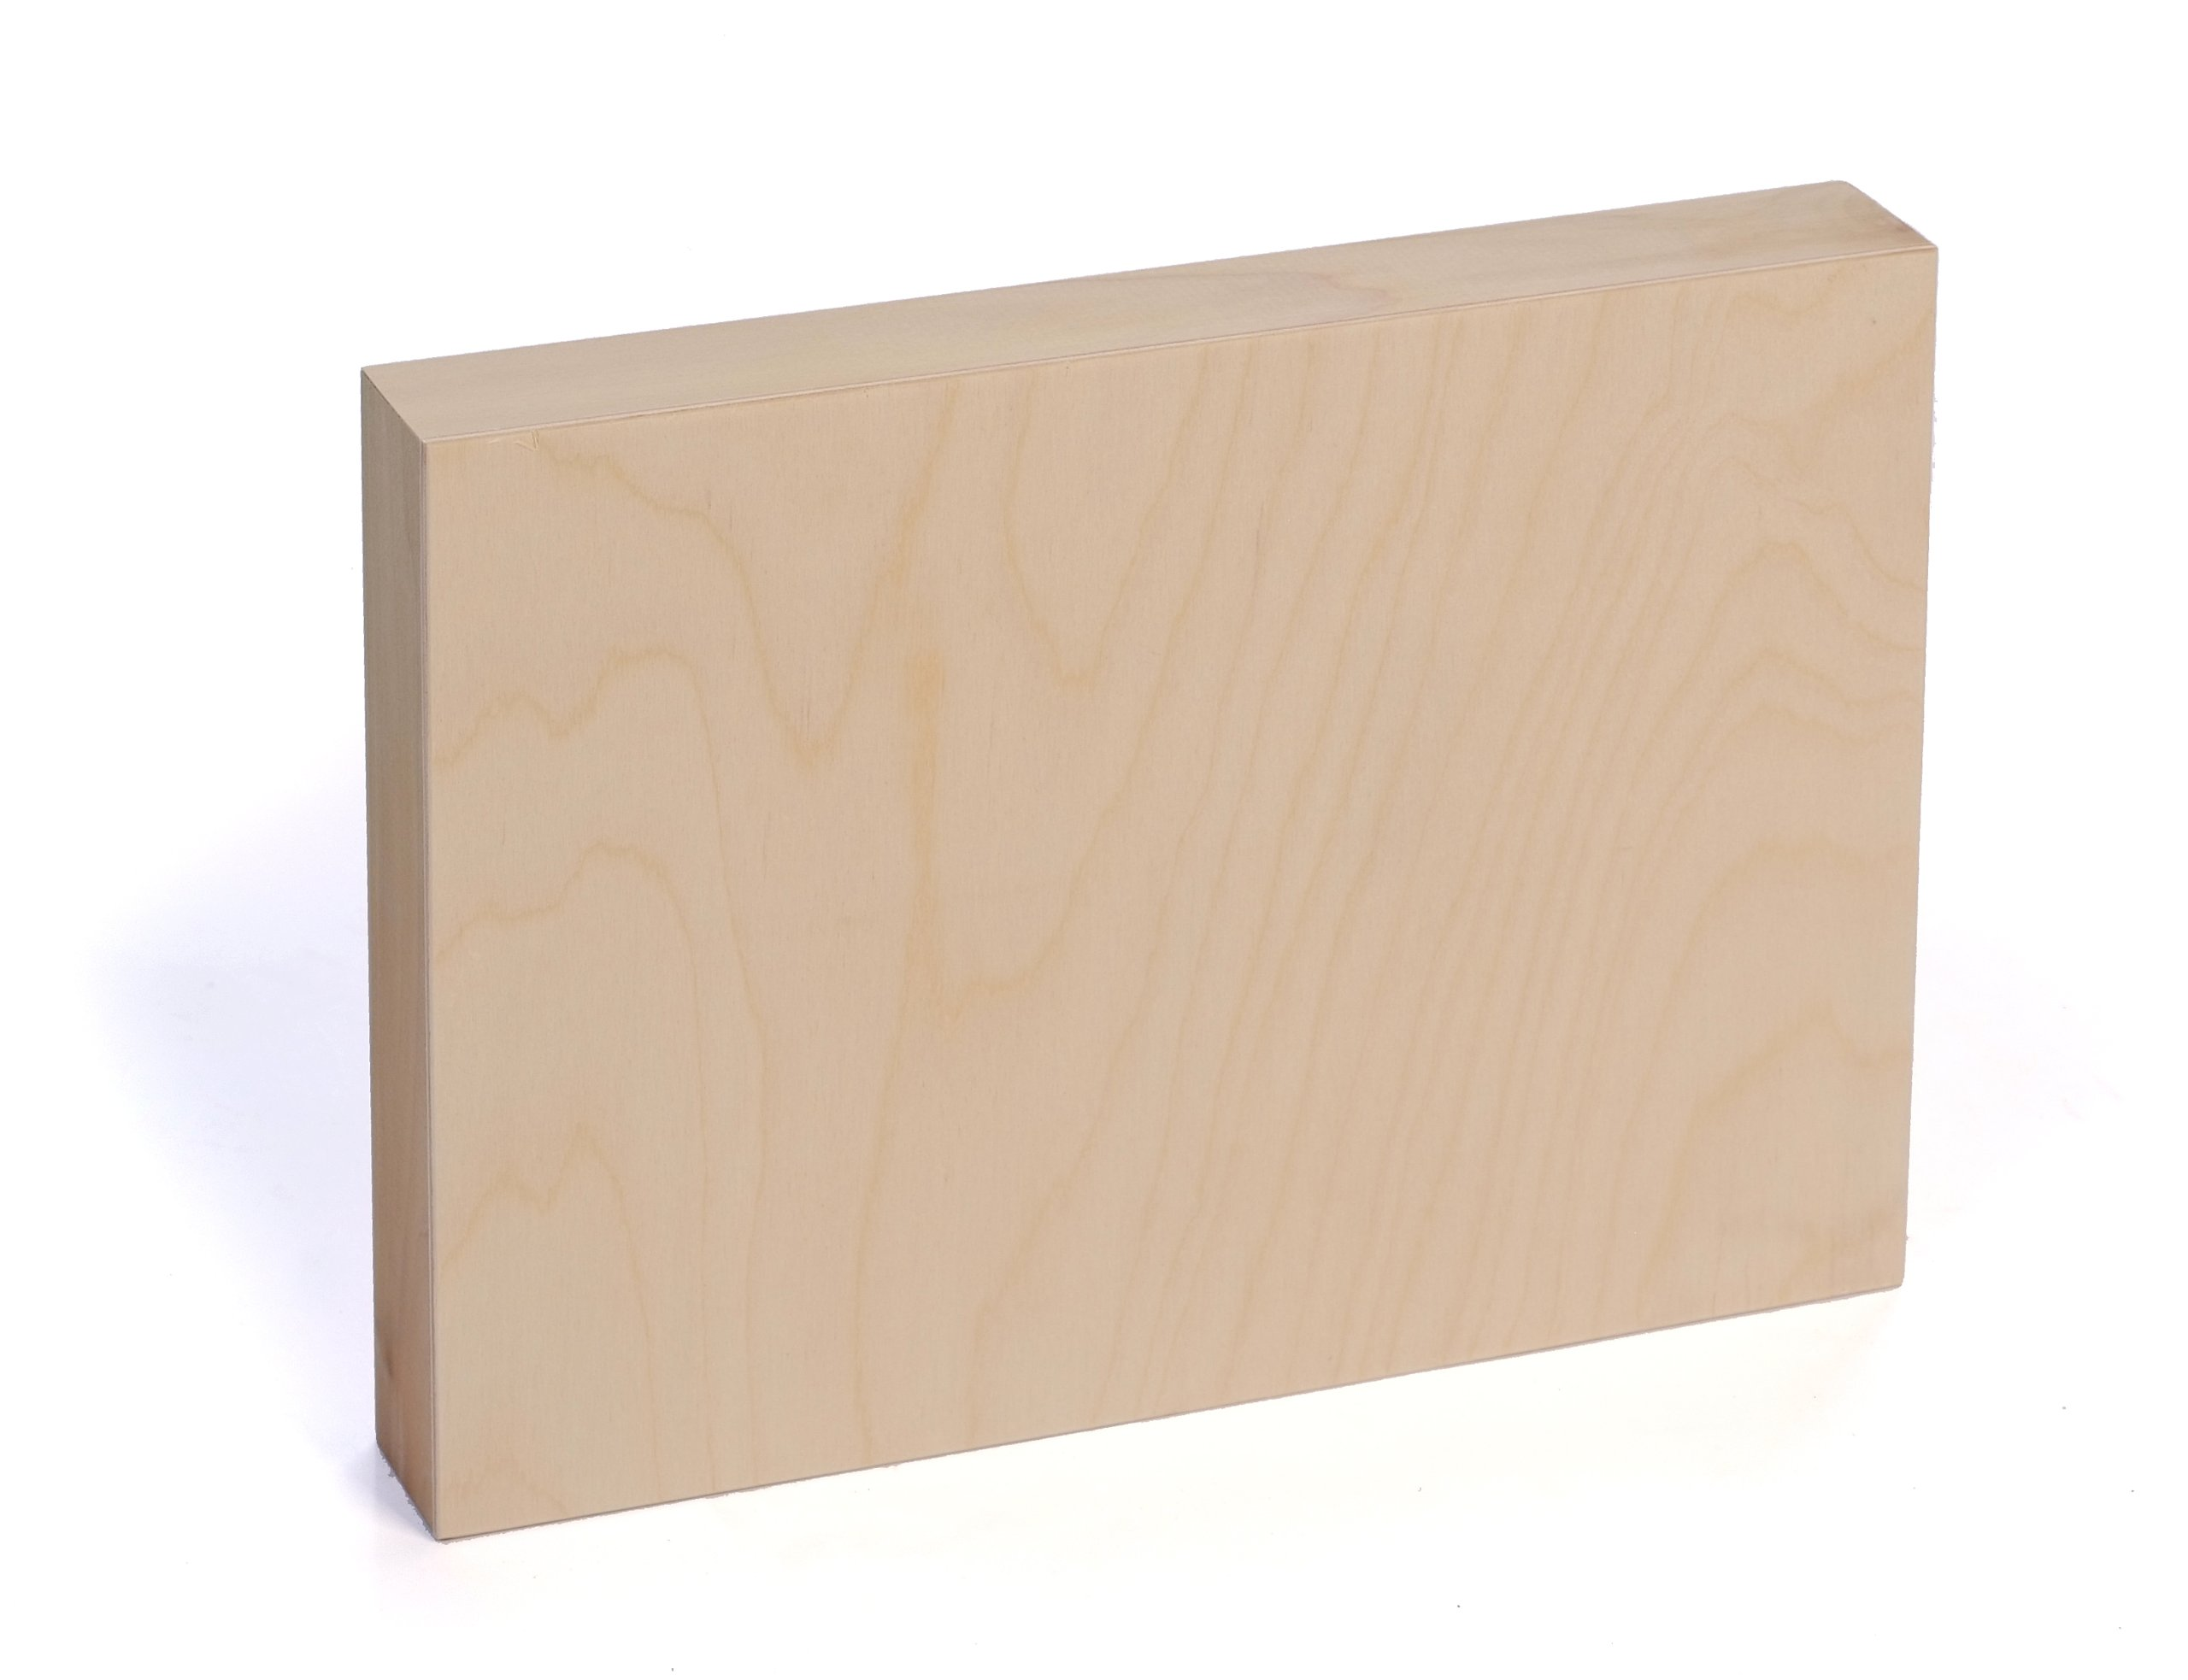 American Easel 9 Inch by 12 Inch by 7/8 Inch Deep Cradled Painting Panel